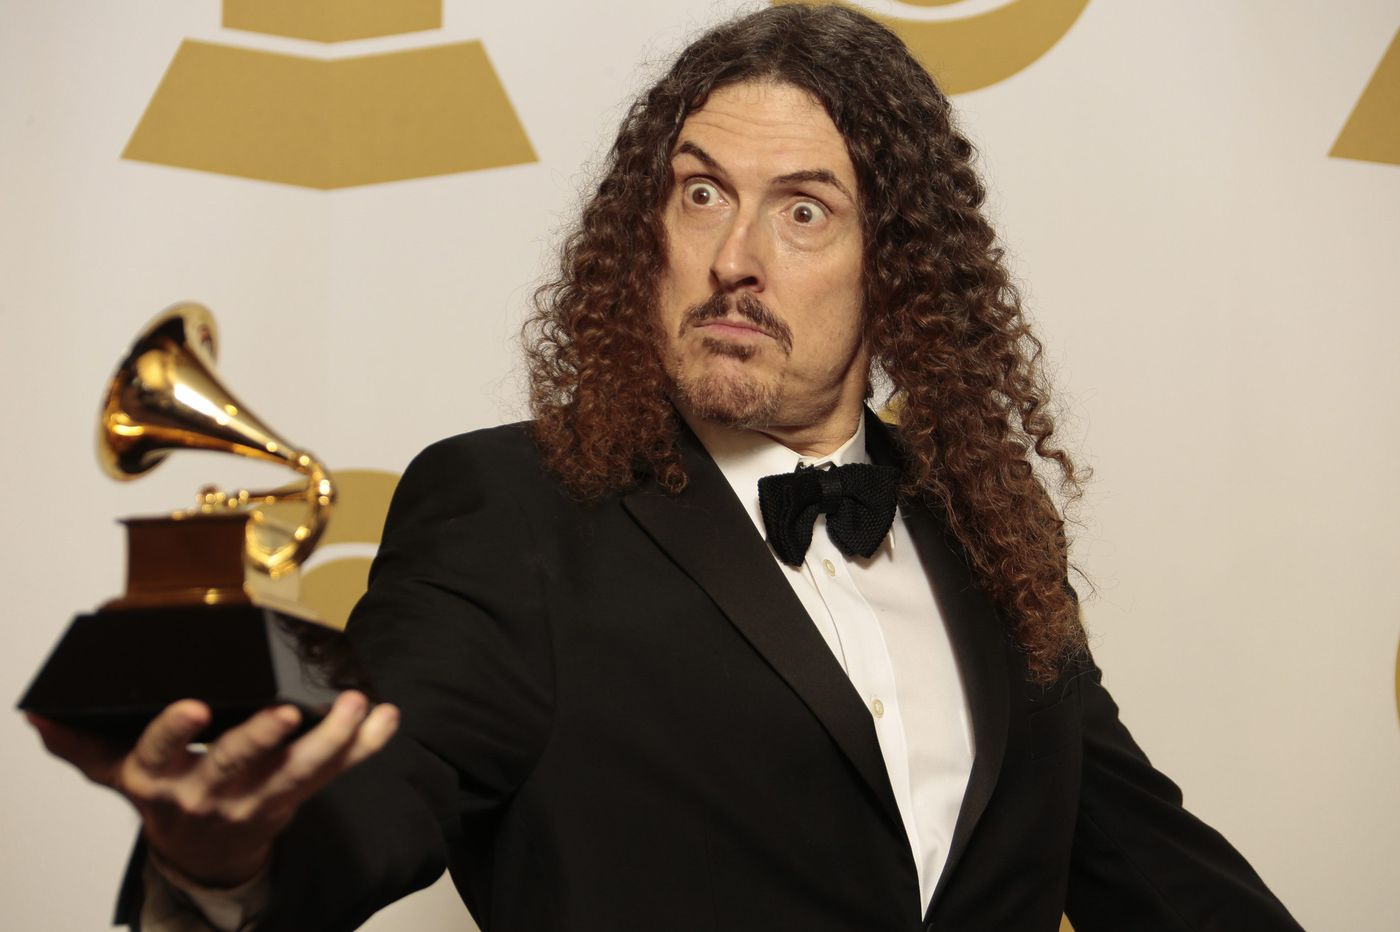 'Weird Al' Yankovic to bring full symphony orchestra tour to The Met Philadelphia